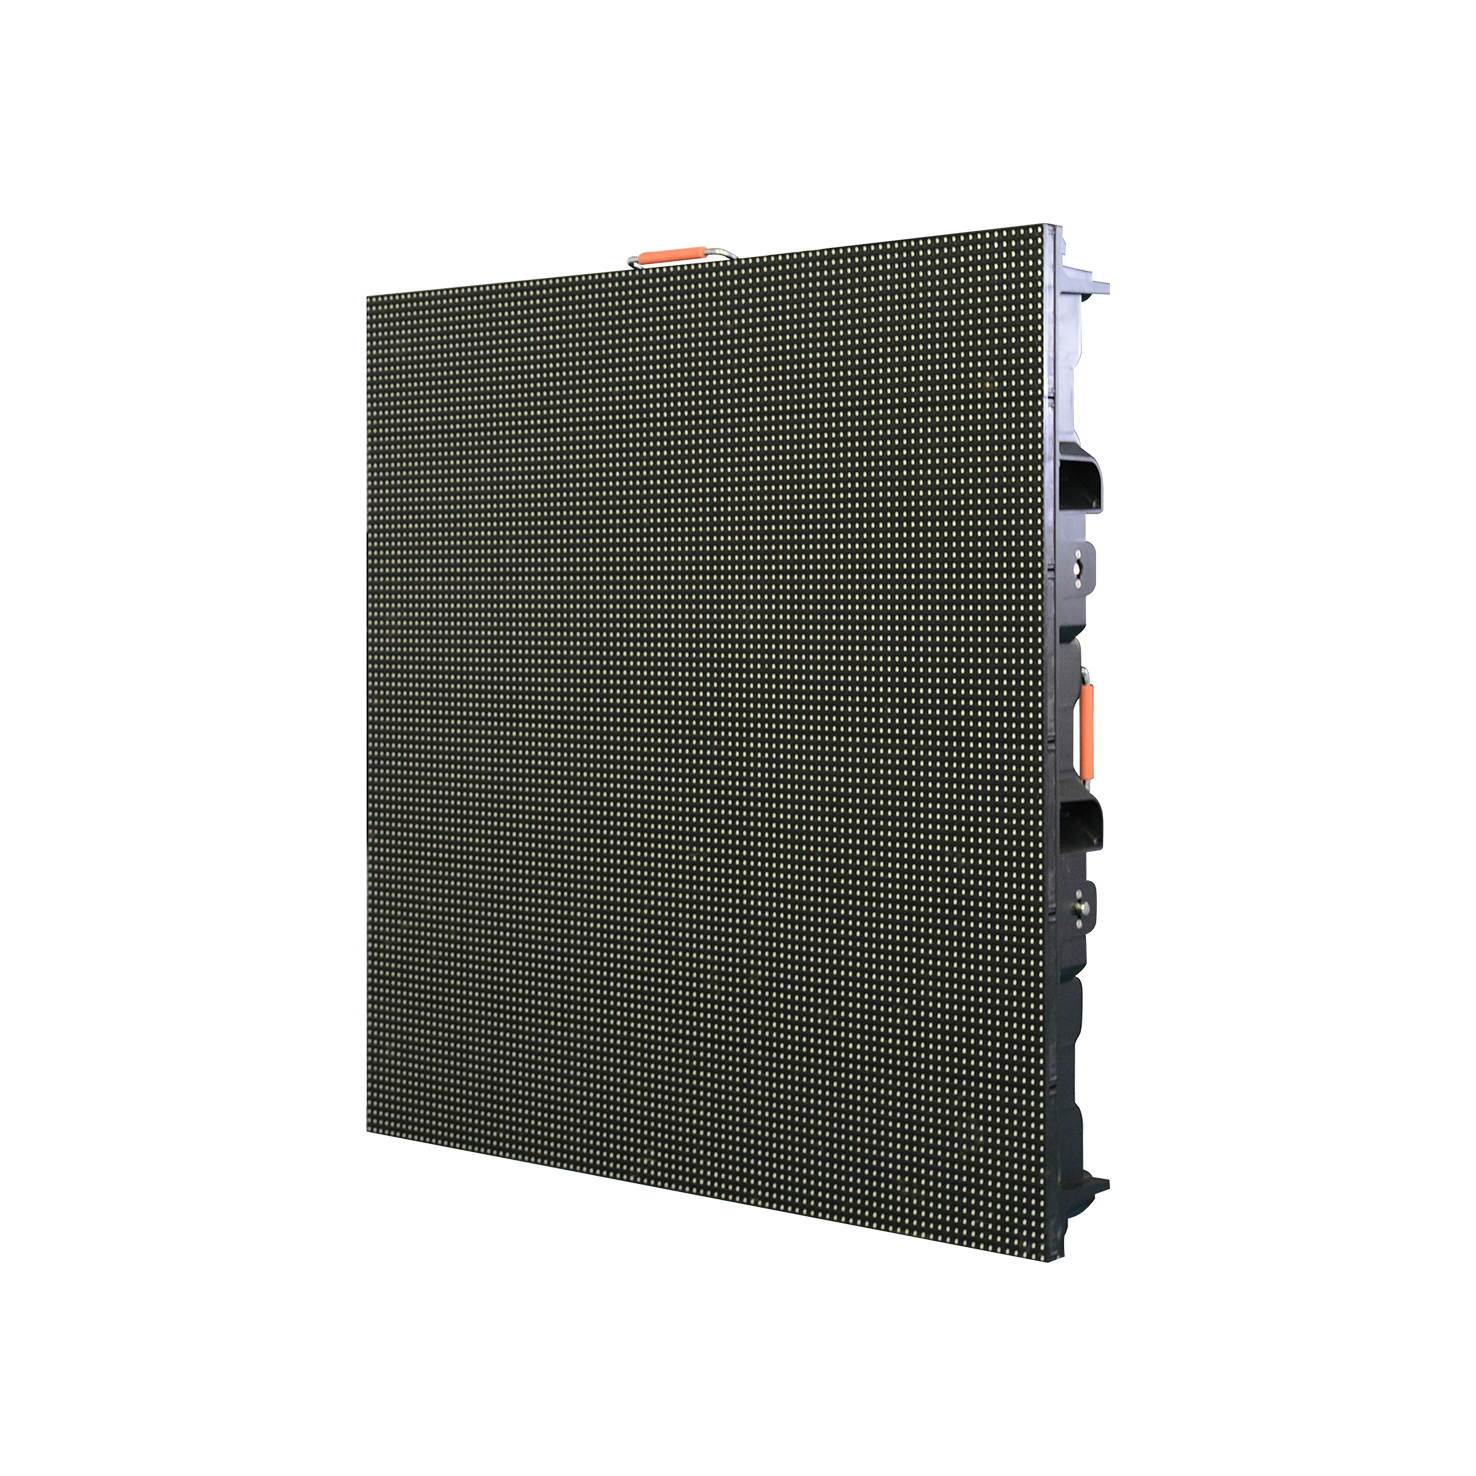 Led rental cabinets FE series 960*960mm